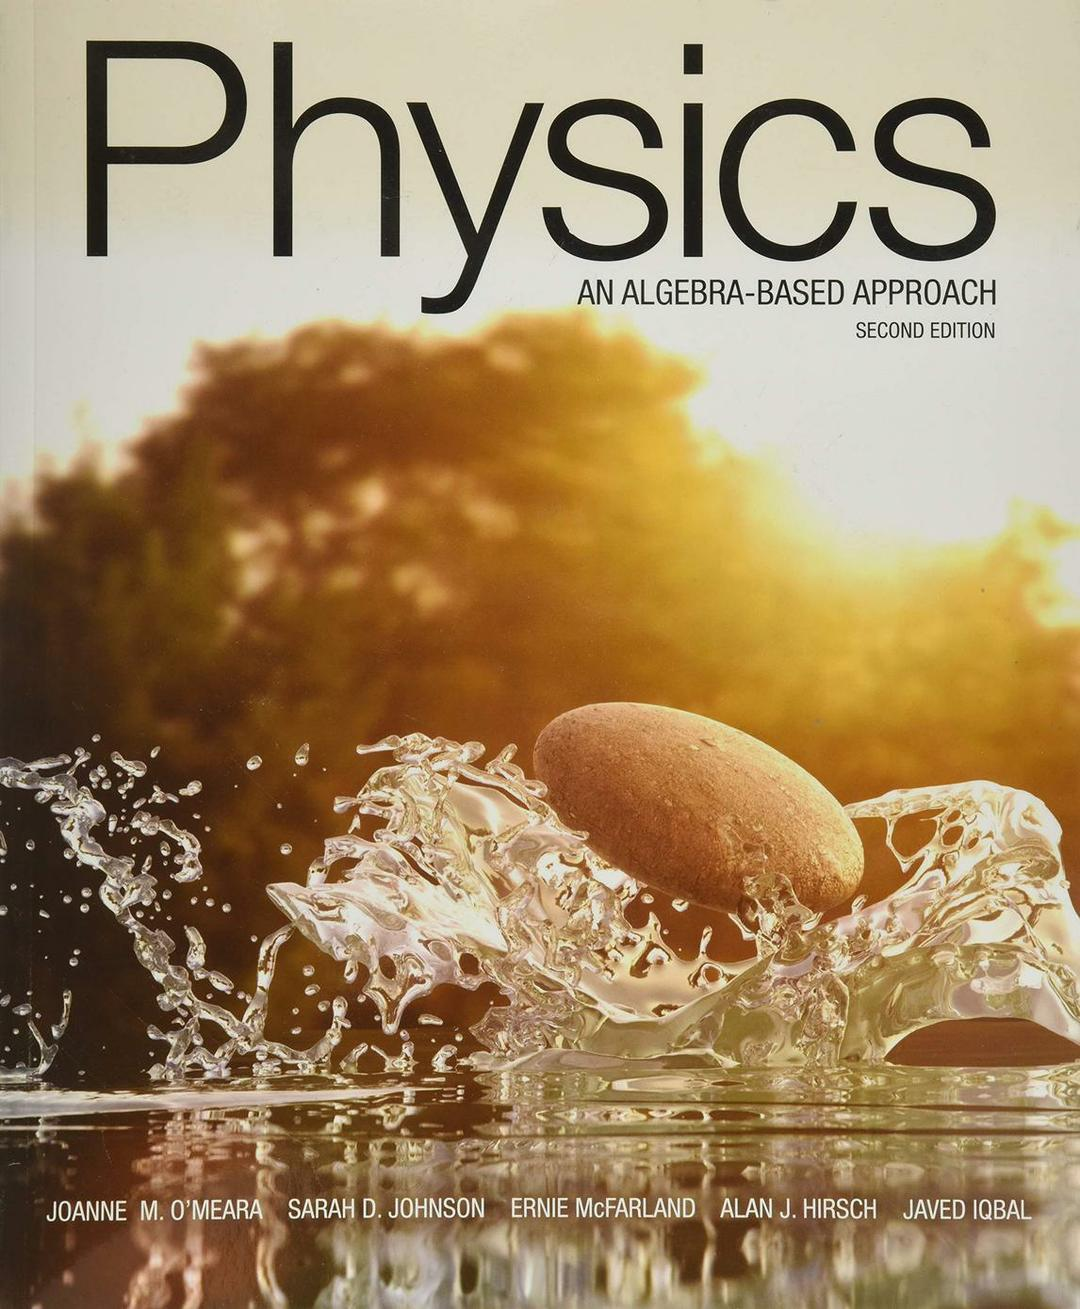 Physics: An Algebra-Based Approach, 2nd Edition - Study Tools